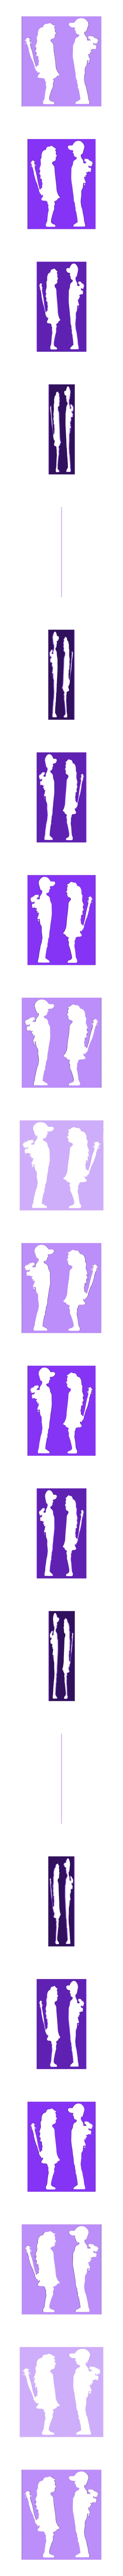 Banksy - Boy meets girl.stl Download STL file Stencil - Banksy - Boy meets girl • 3D print template, Made_In_Space